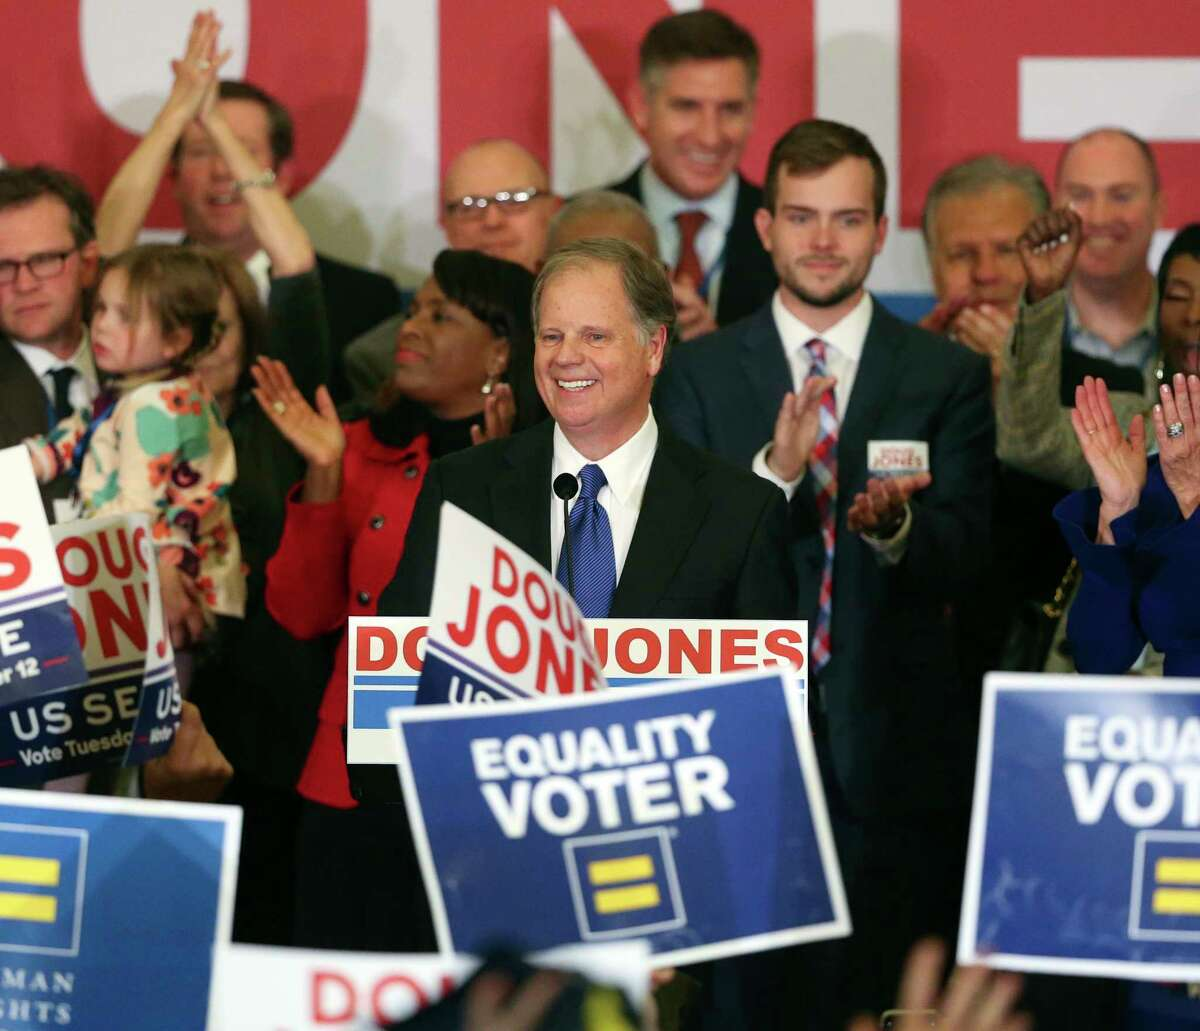 Democrat Doug Jones speaks Tuesday, Dec. 12, 2017, in Birmingham, Ala. In a stunning victory aided by scandal, Jones won Alabama's special Senate election, beating back history, an embattled Republican opponent and President Donald Trump, who urgently endorsed GOP rebel Roy Moore despite a litany of sexual misconduct allegations. (AP Photo/John Bazemore)